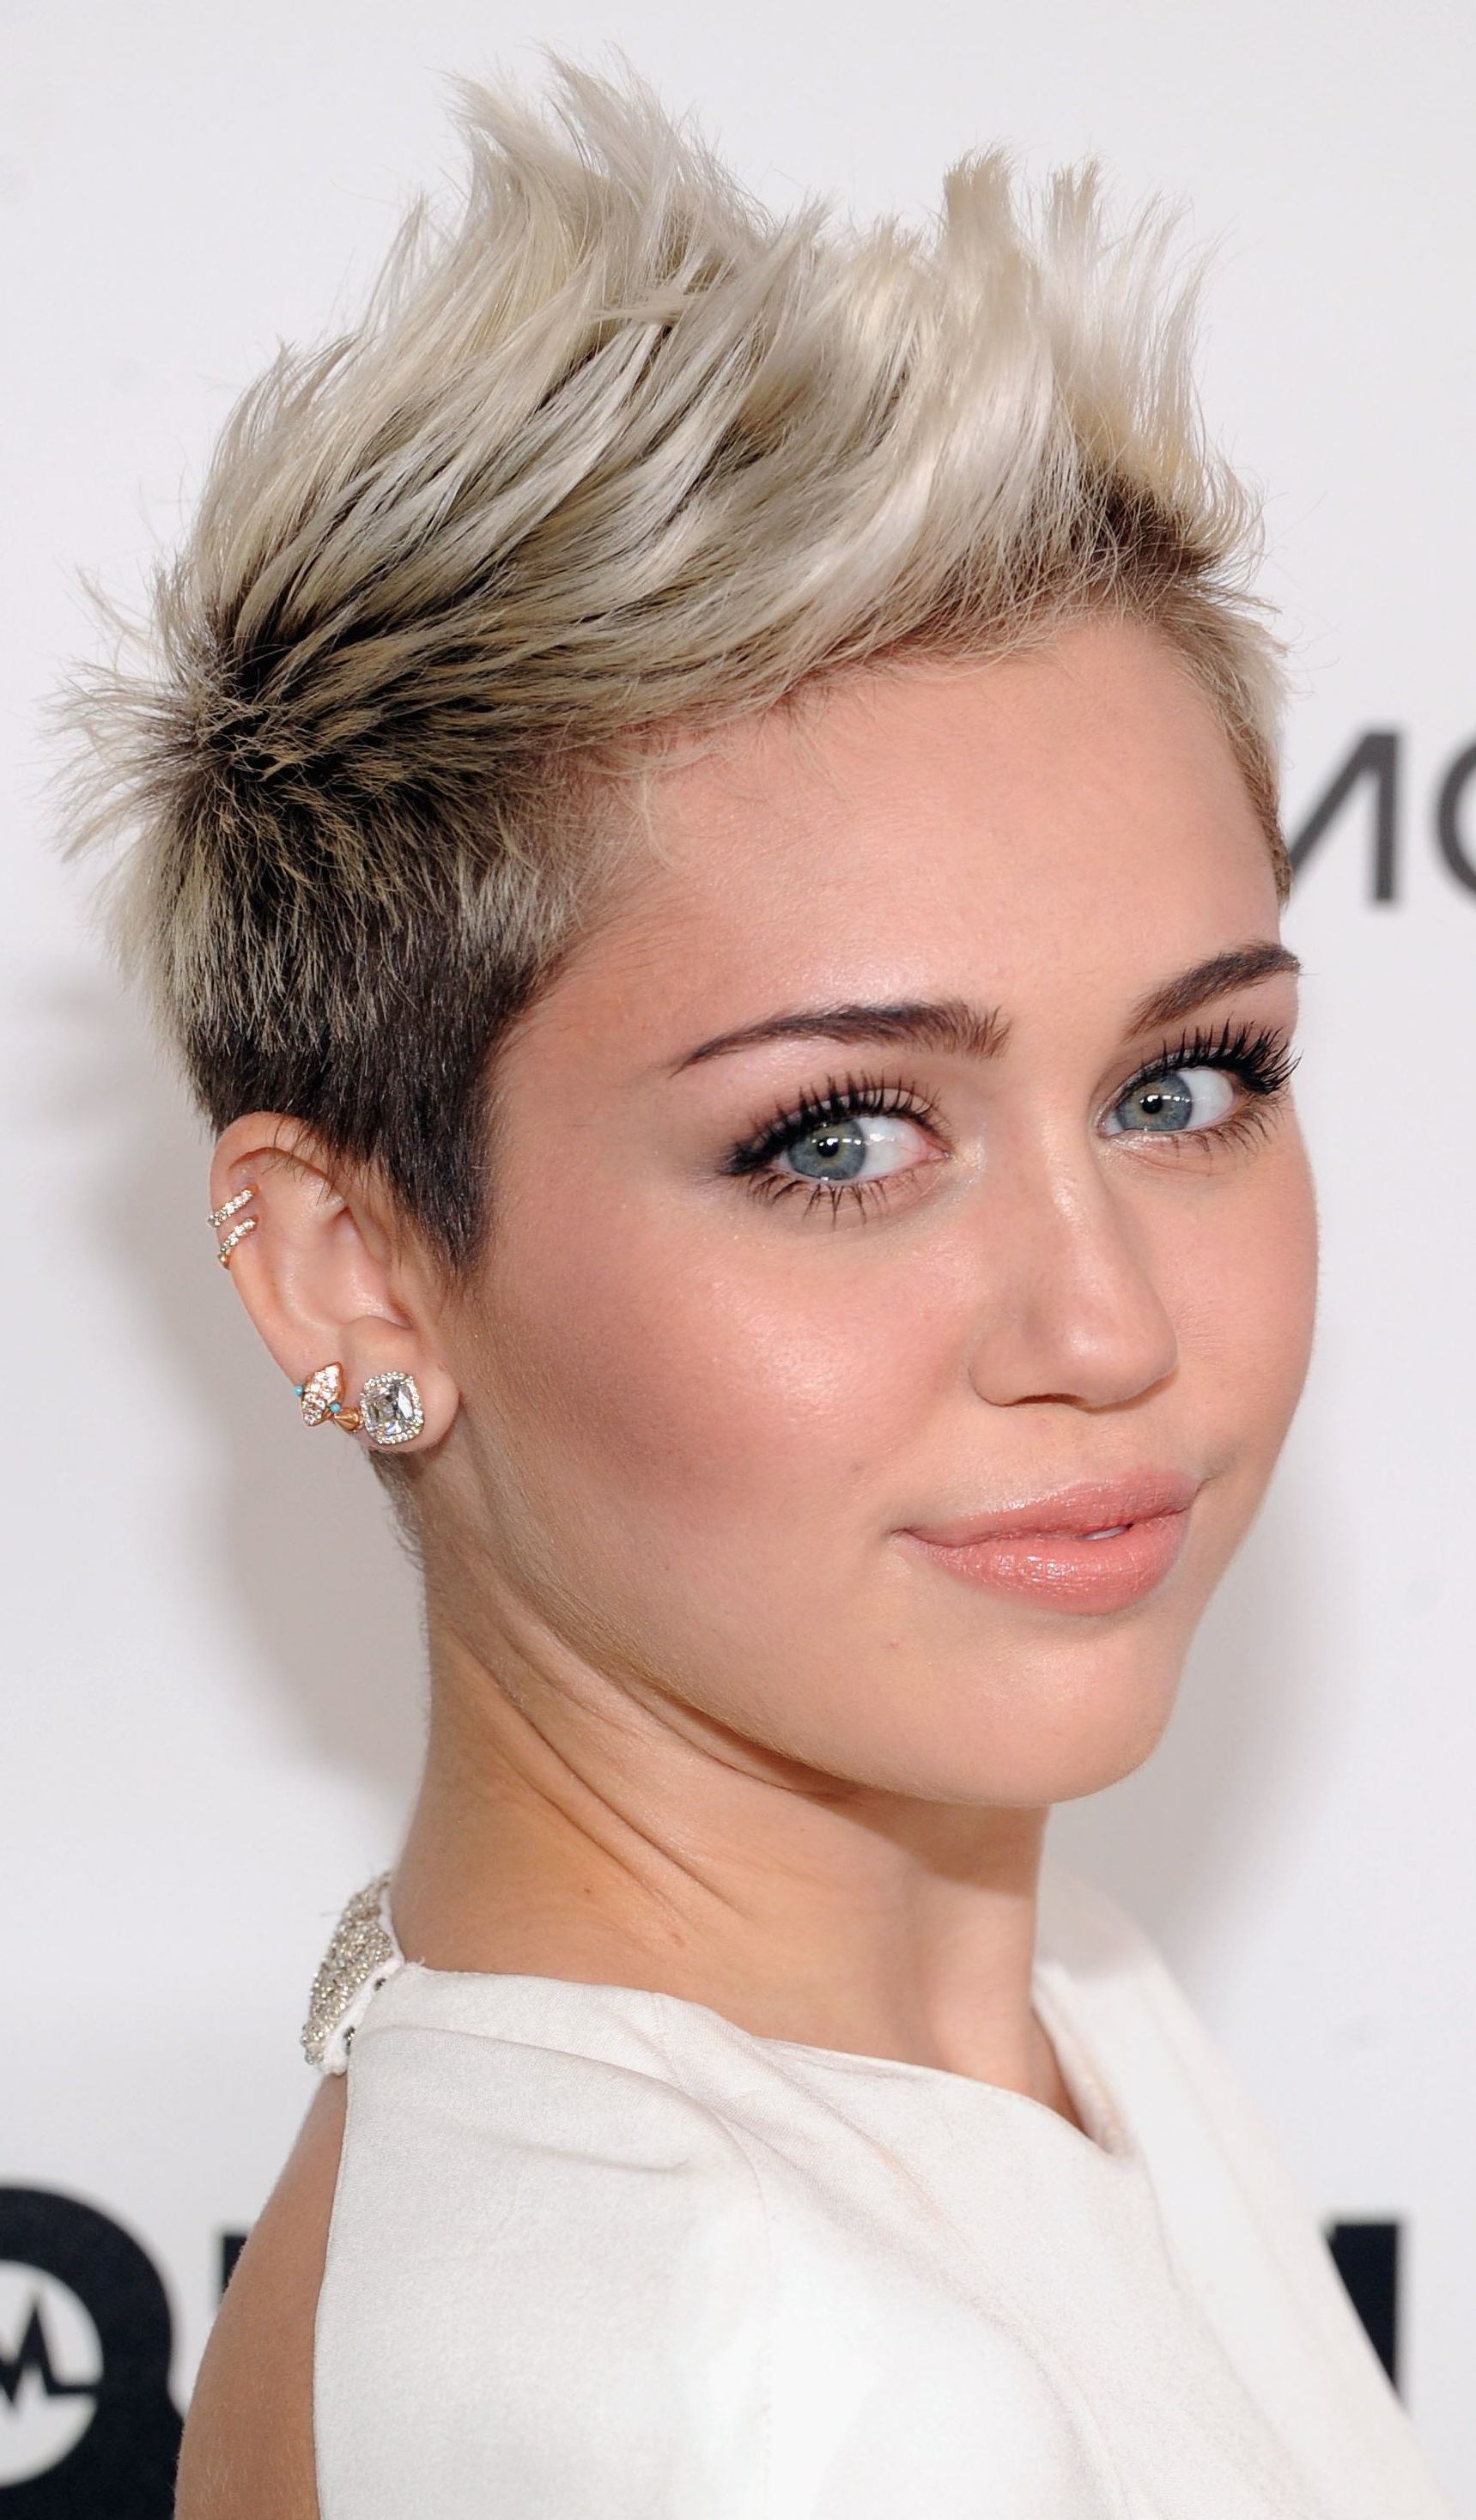 Miley Cyrus: Platinum Blonde Ombre Short Hairstyle In 2018 | Hair With Regard To Miley Cyrus Short Haircuts (View 10 of 25)